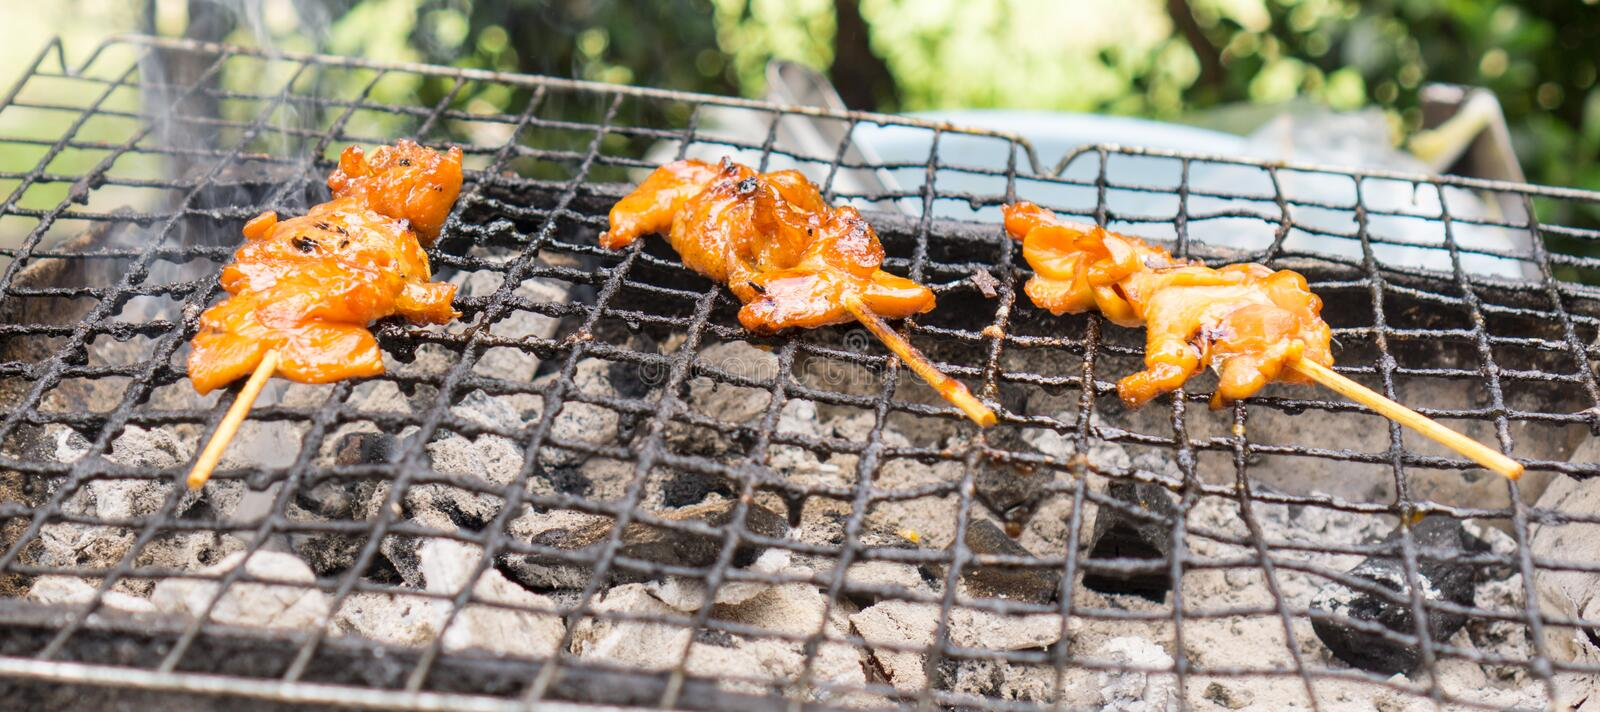 Charcoal grilled chicken. On barbecued mesh and hot stove stock photo